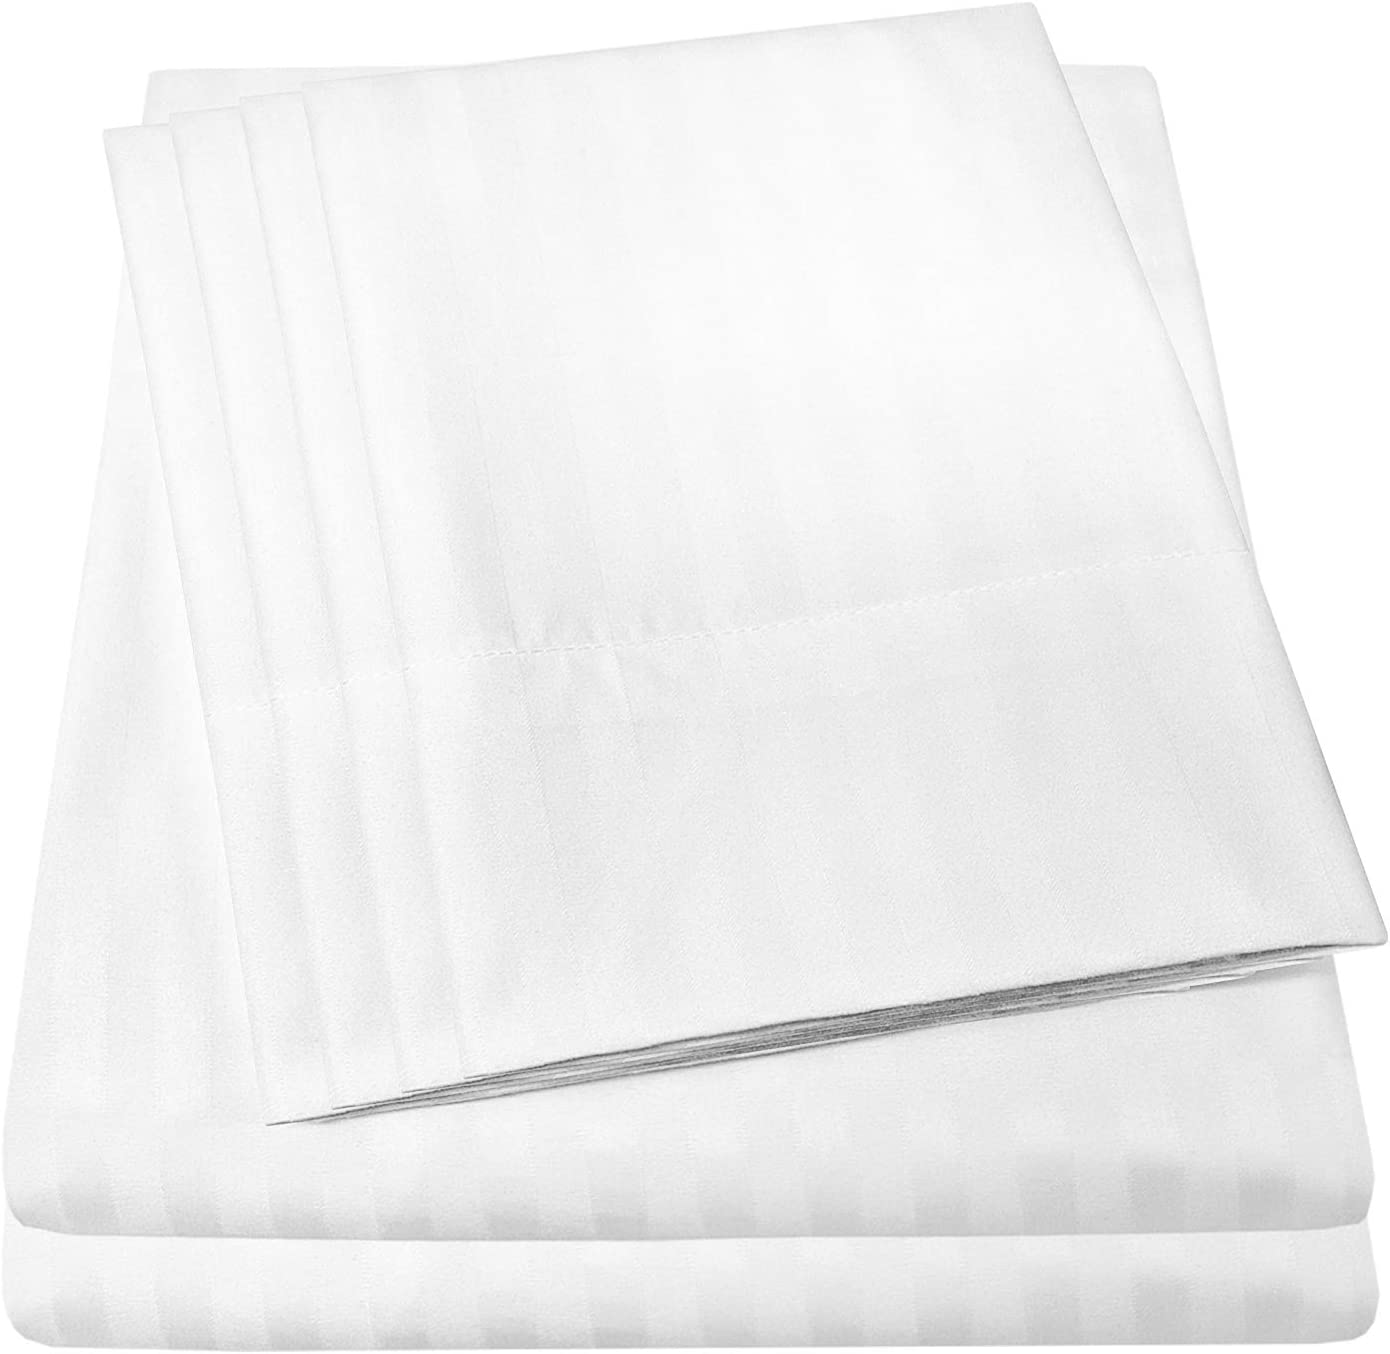 Sweet Home Collection 6 Piece Bed Sheets 1500 Thread Count Fine Microfiber Deep Pocket Set-EXTRA PILLOW CASES, VALUE, Queen, Dobby White